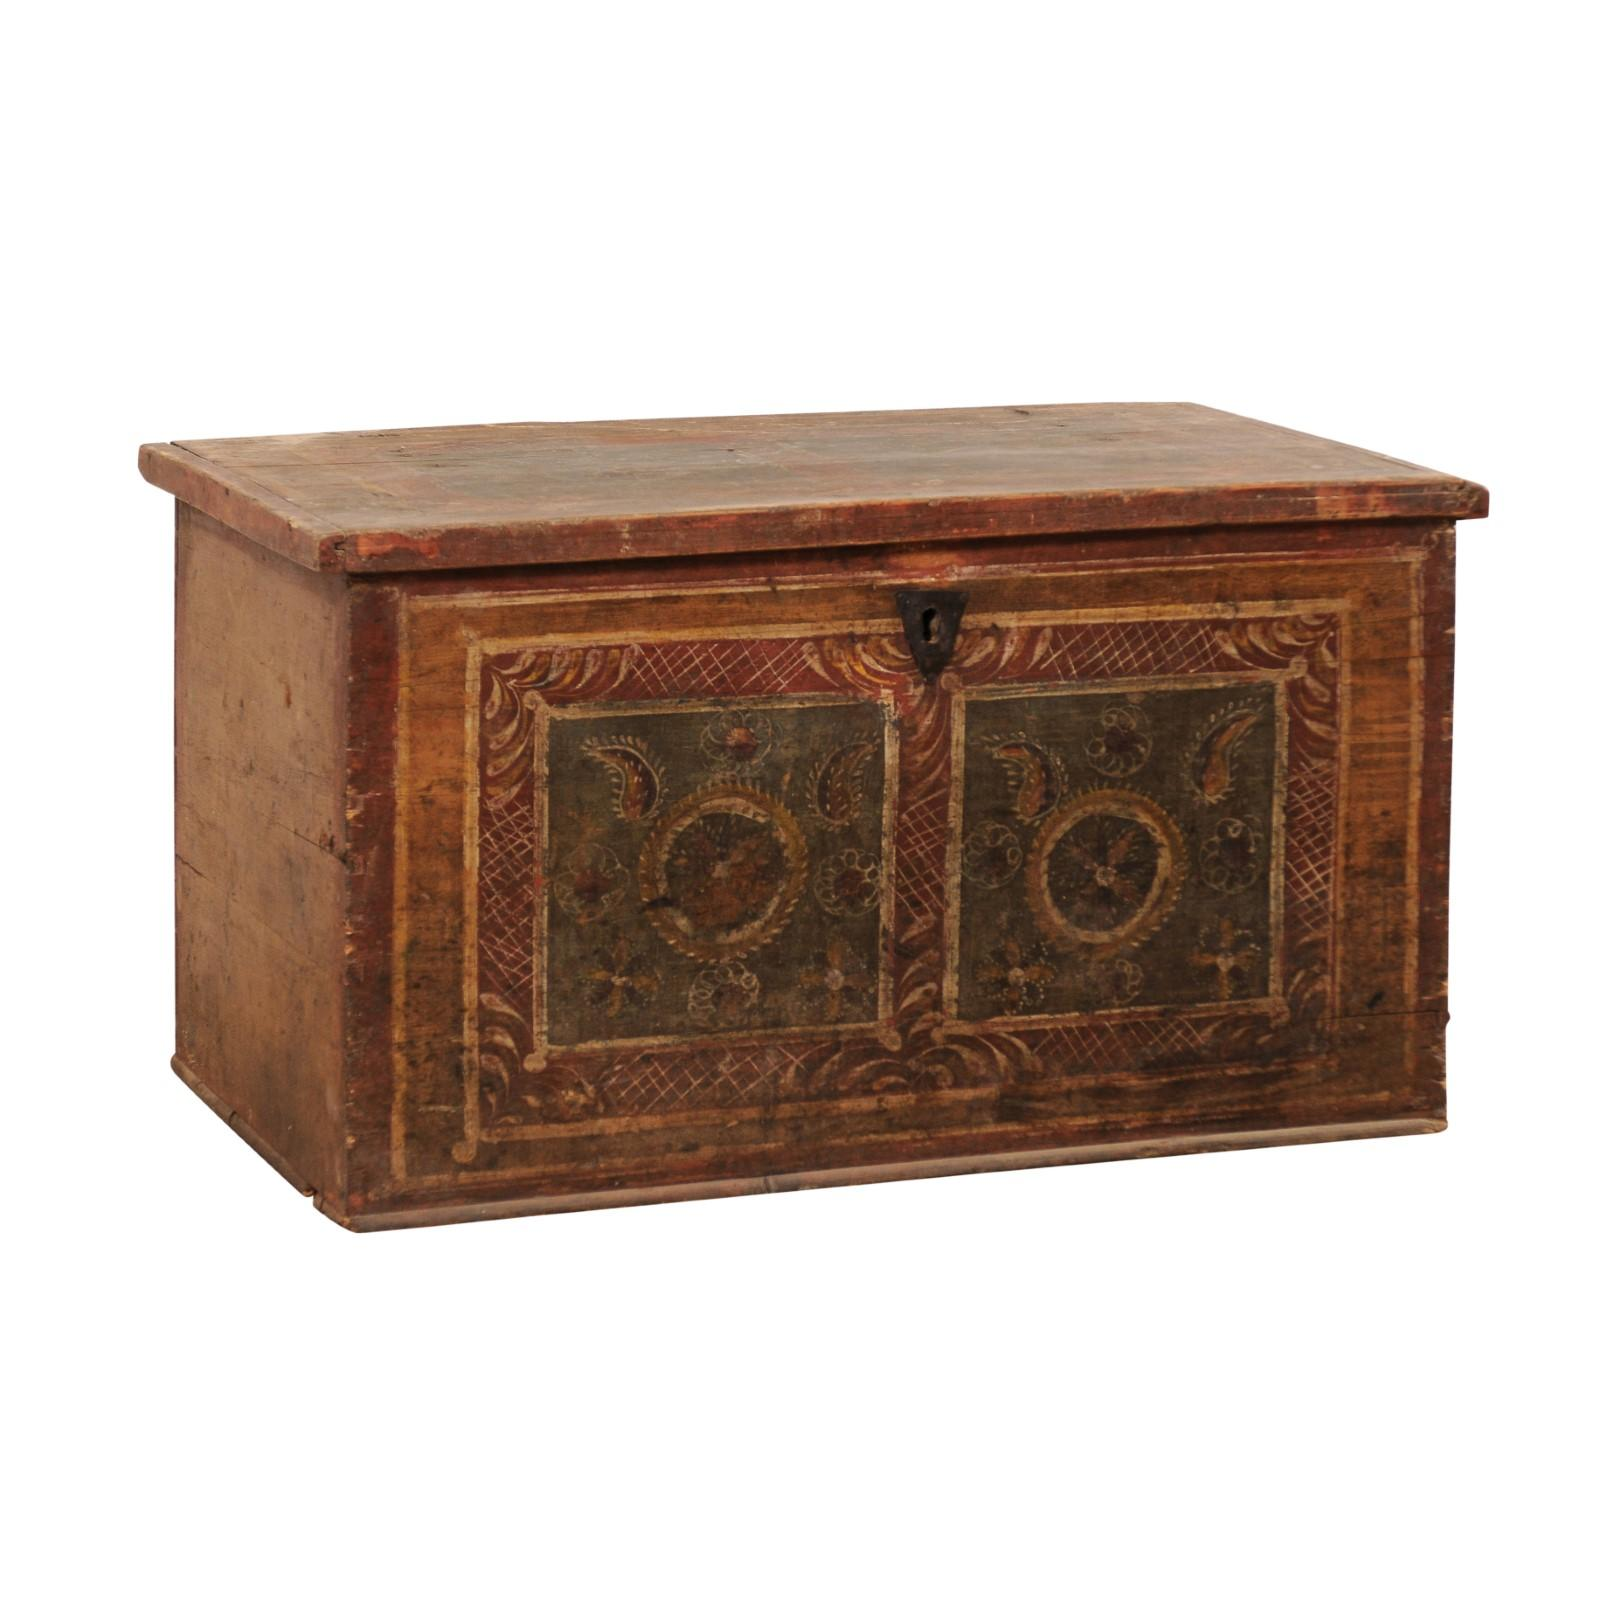 19th Century European Hand Painted Wooden Coffer Trunk